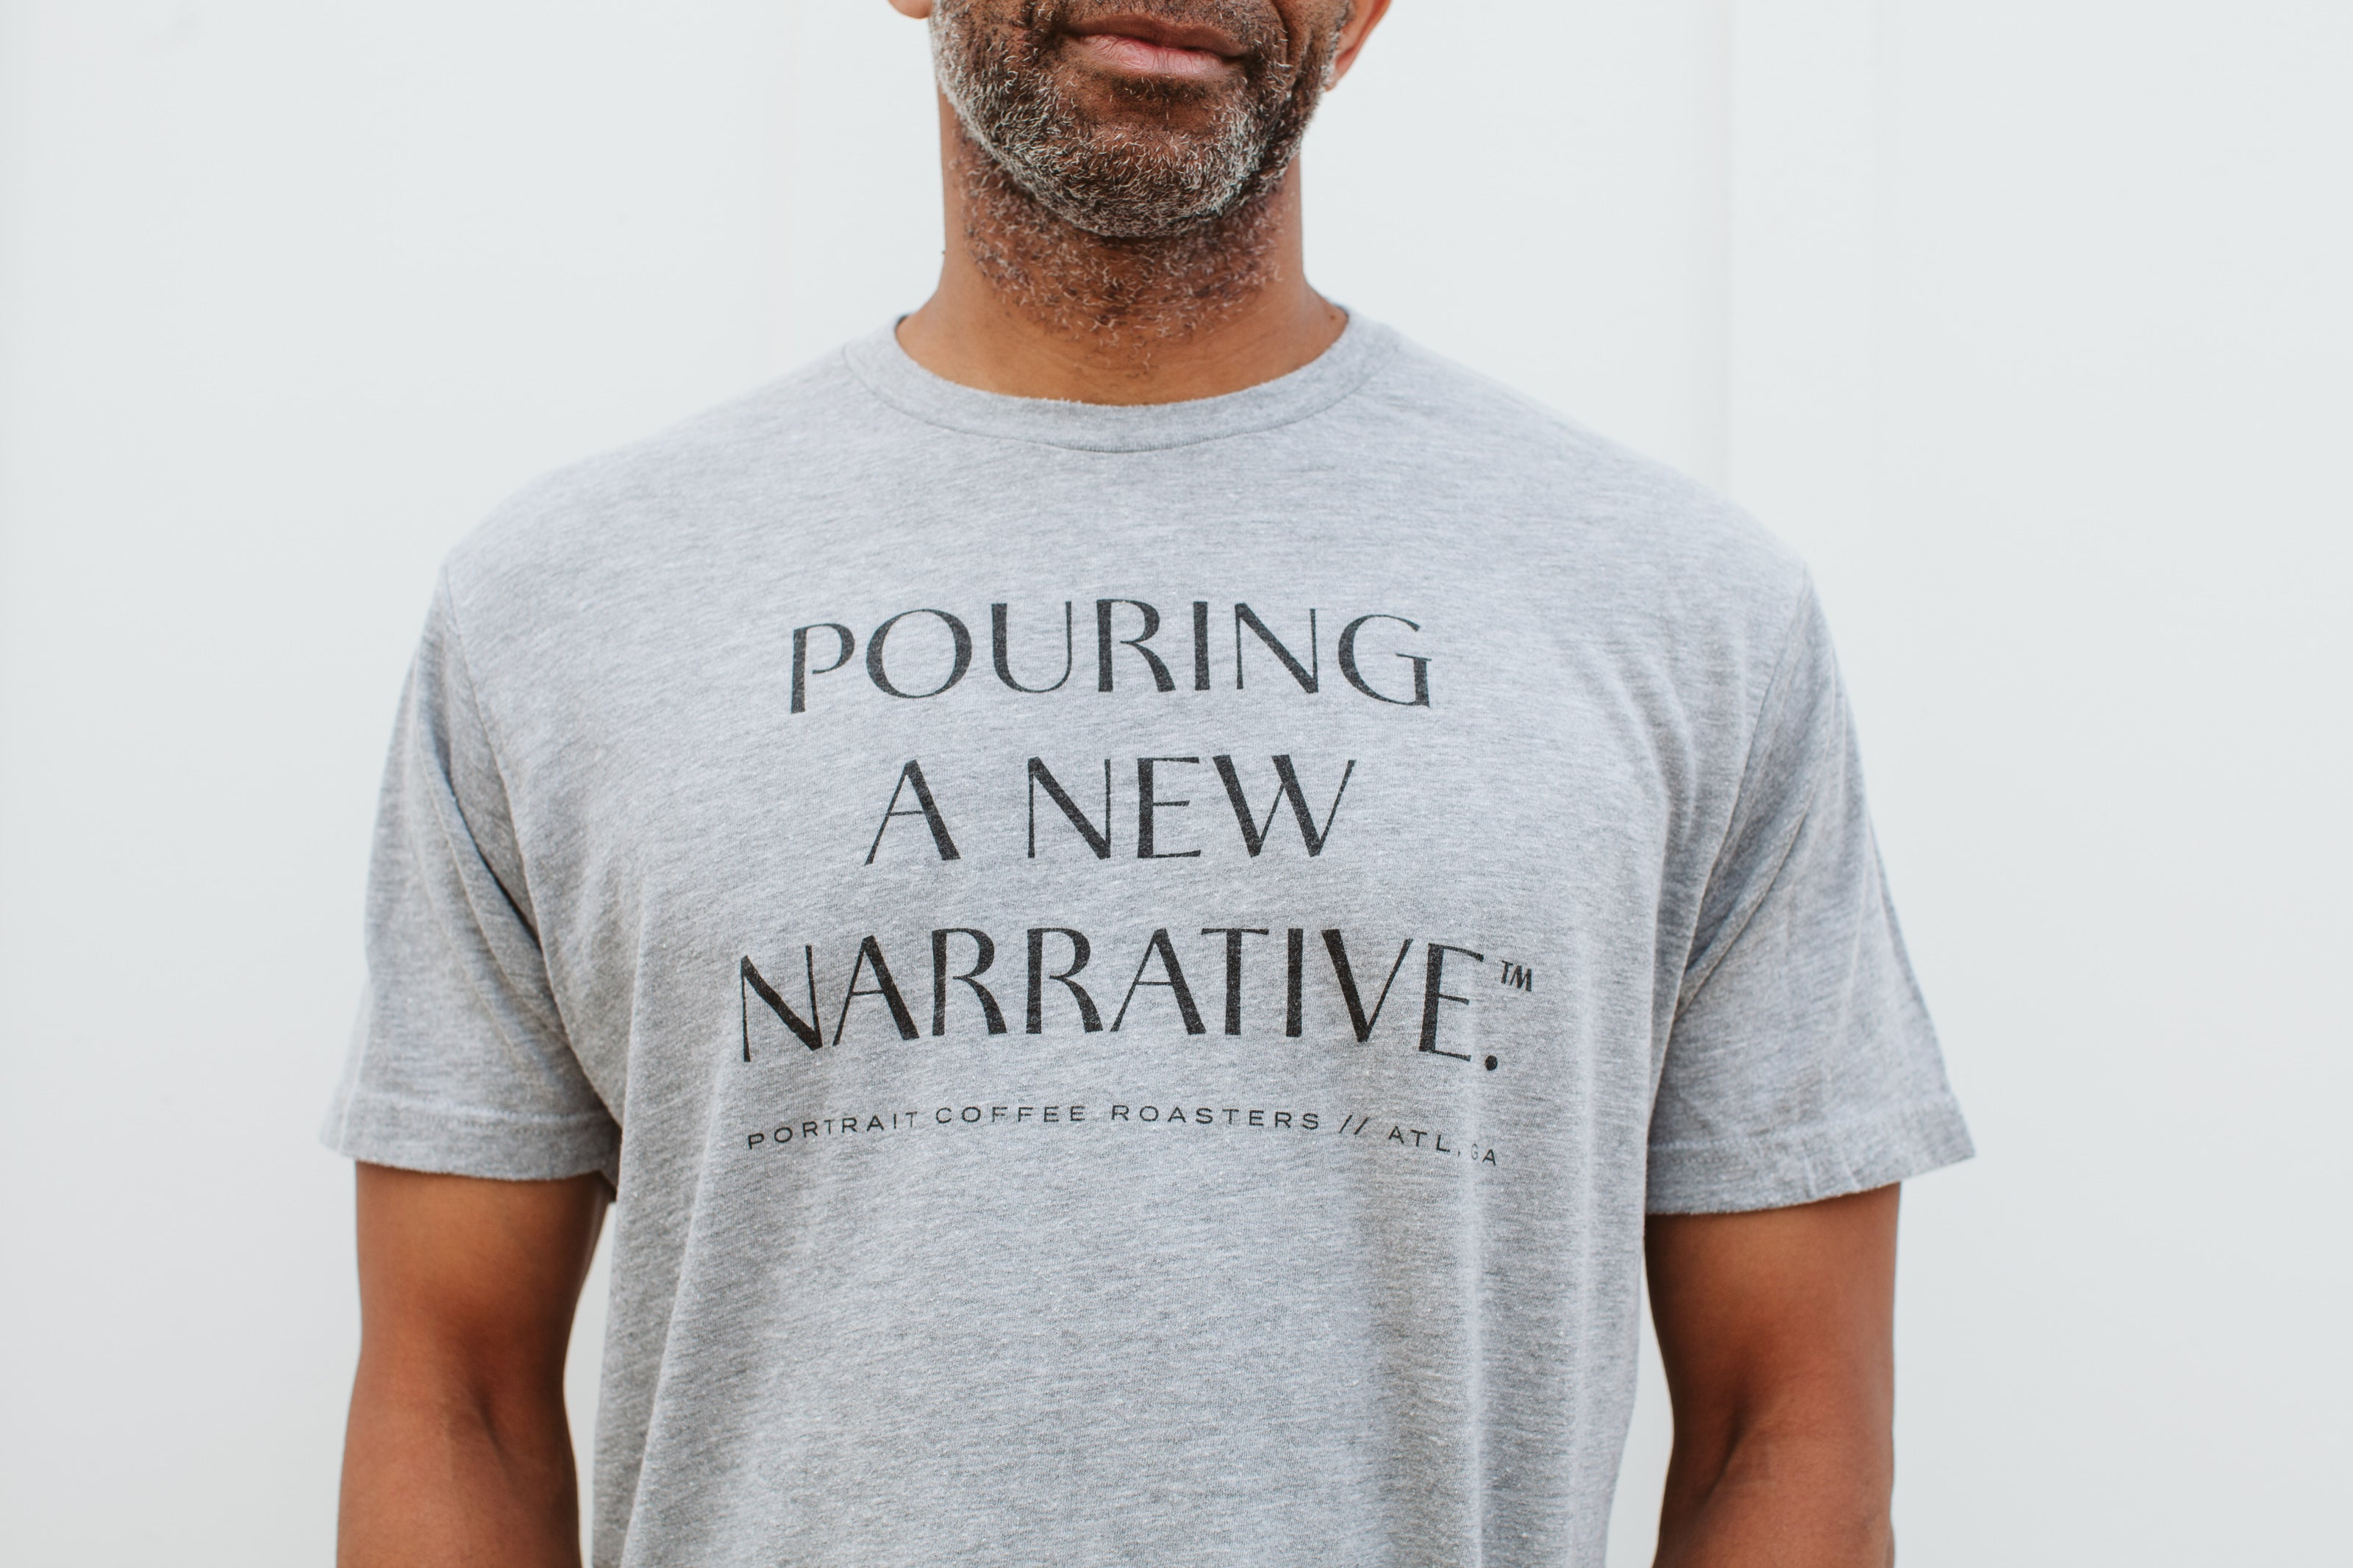 'Pouring a New Narrative' Short Sleeve T-Shirt - Gray